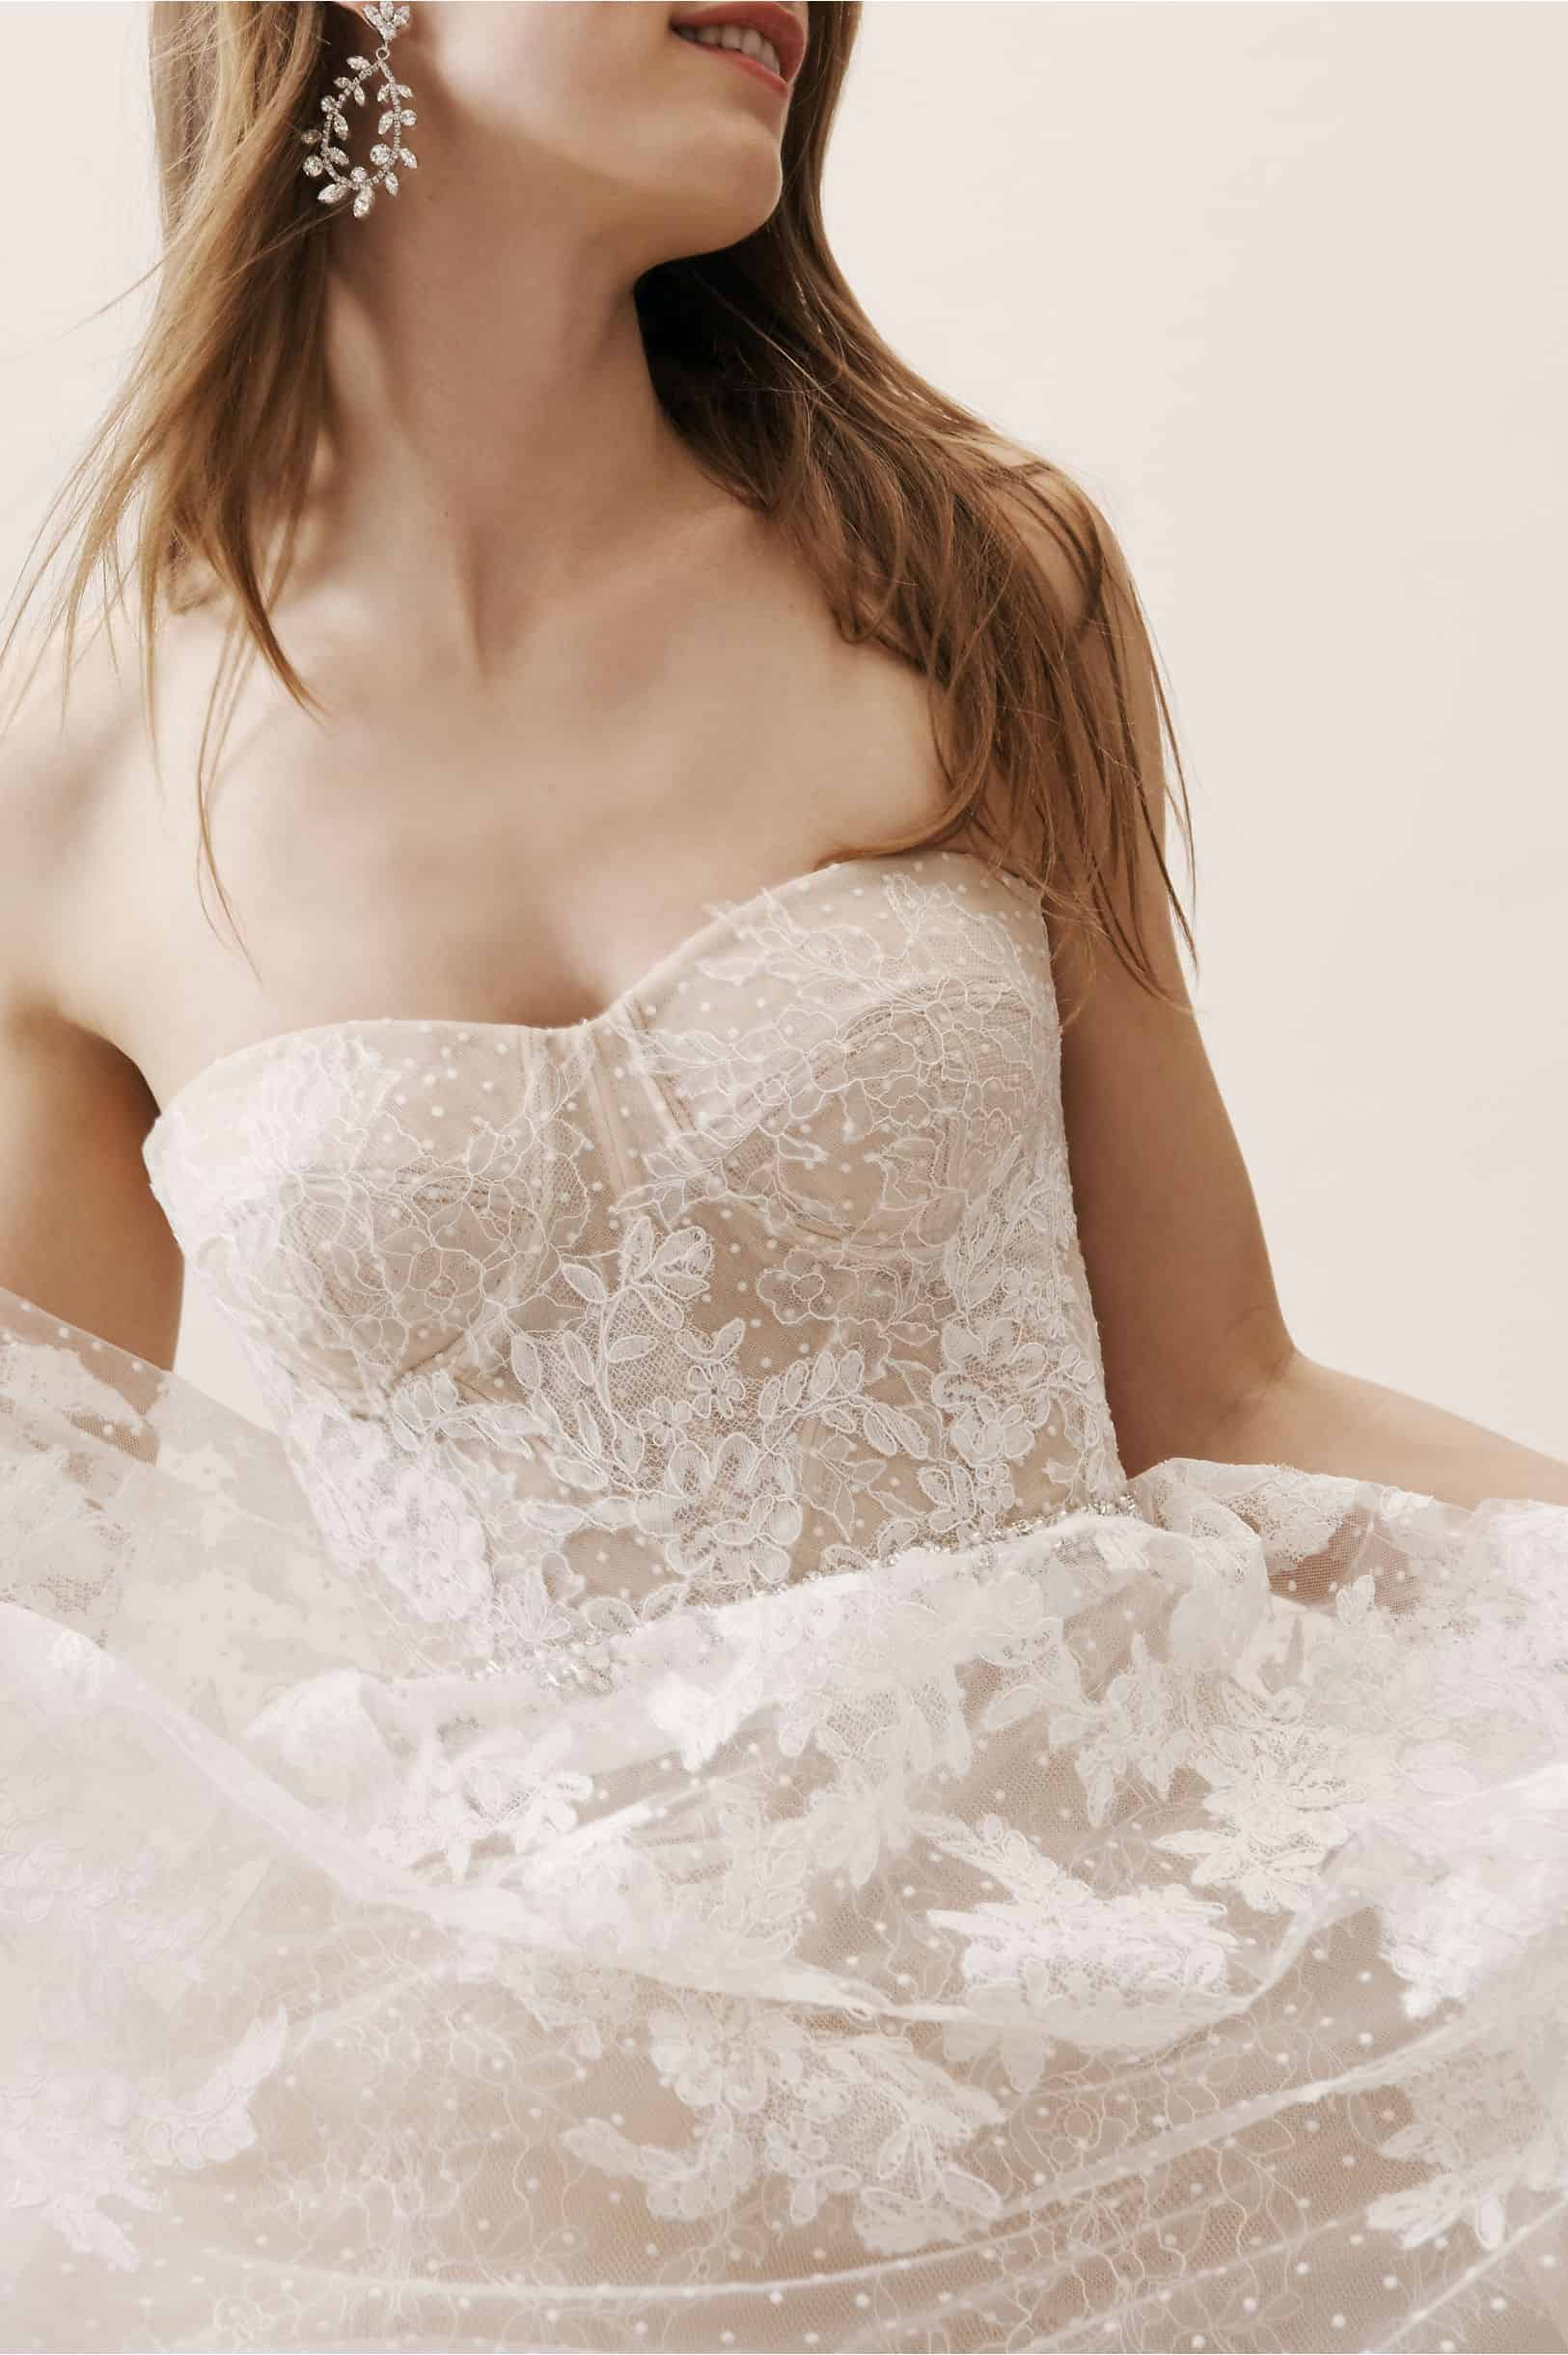 Strapless Wedding Dress Nude Bridal Gown Chantilly Lace Swiss Dot Tulle Geneva Gown BHLDN Watters